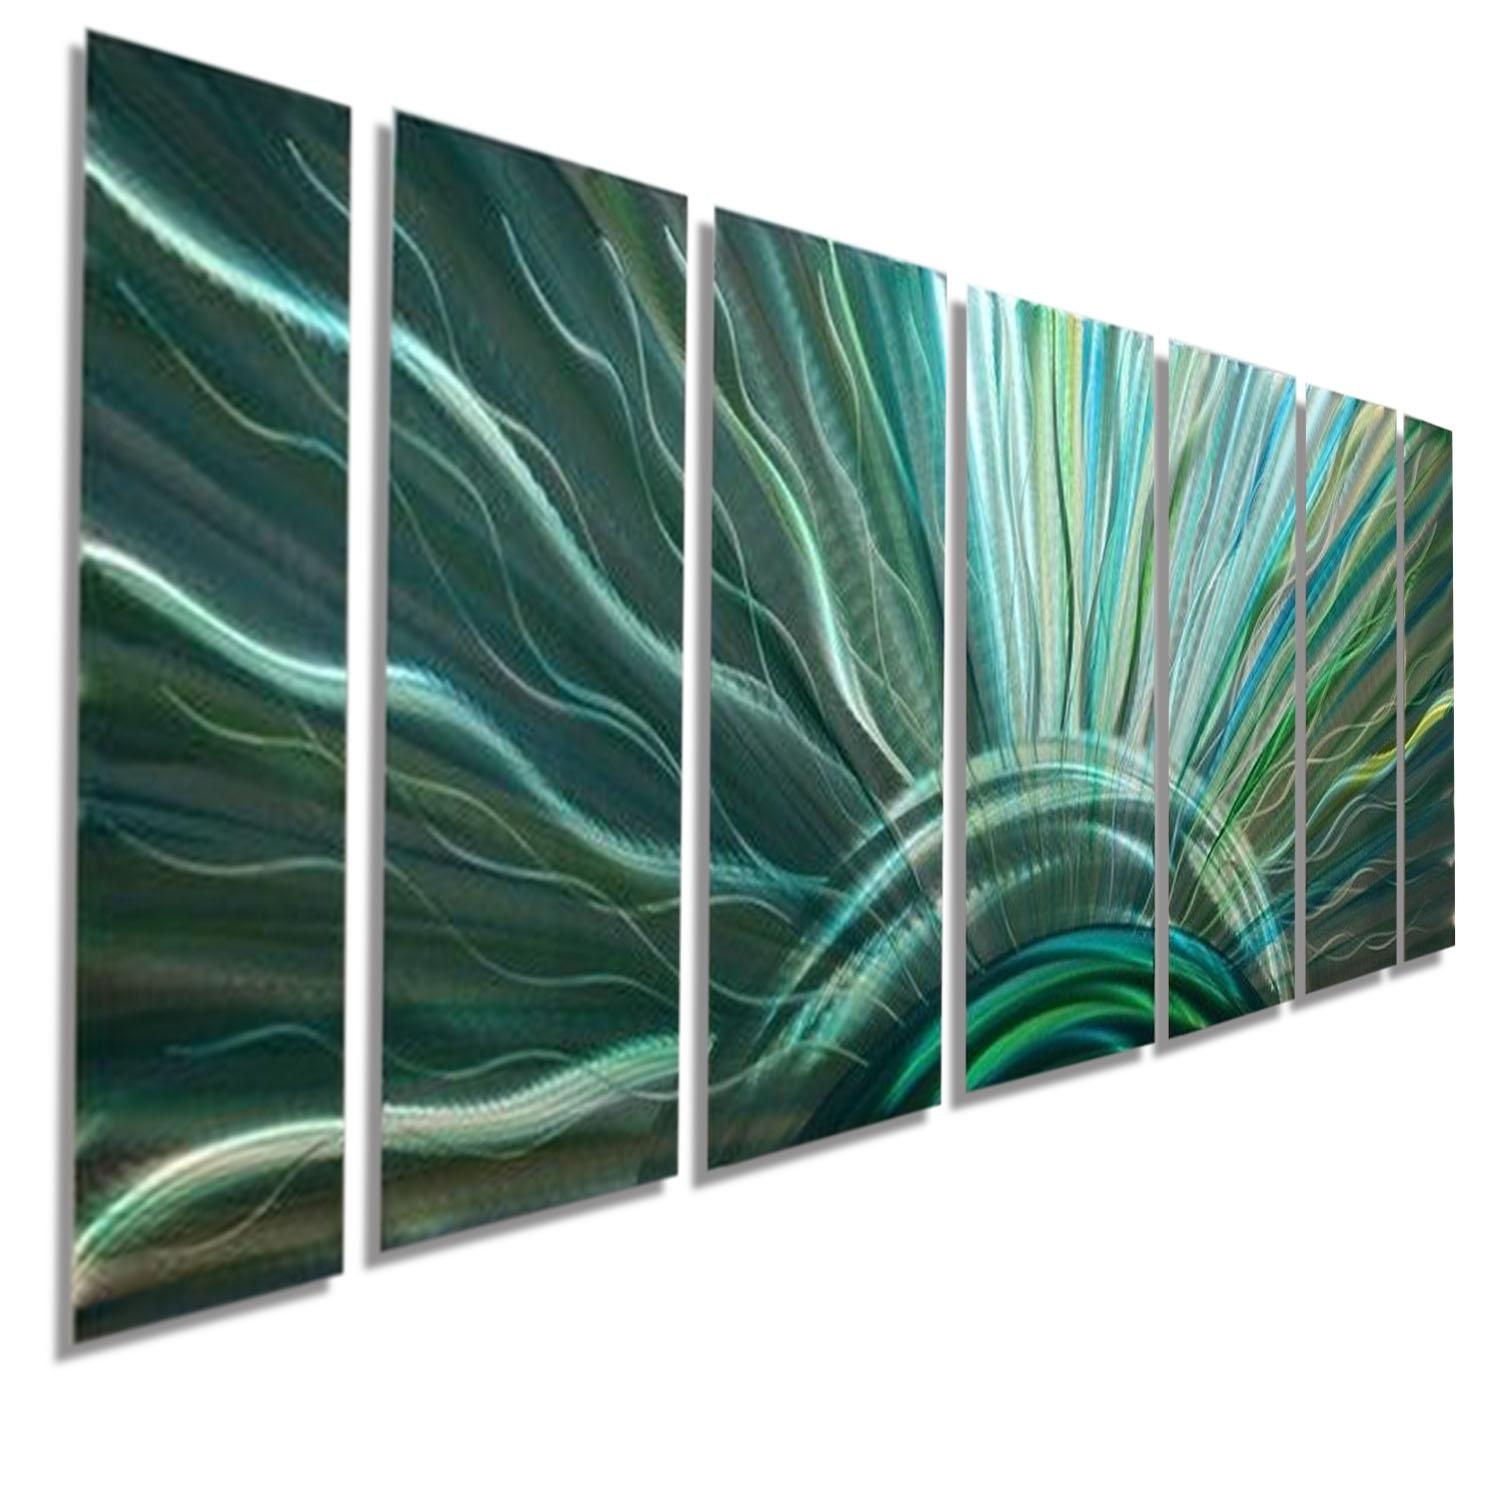 Blue Moon – Silver With Blue & Green Fusion Modern Metal Wall Art Regarding Fused Glass And Metal Wall Art (Image 6 of 20)